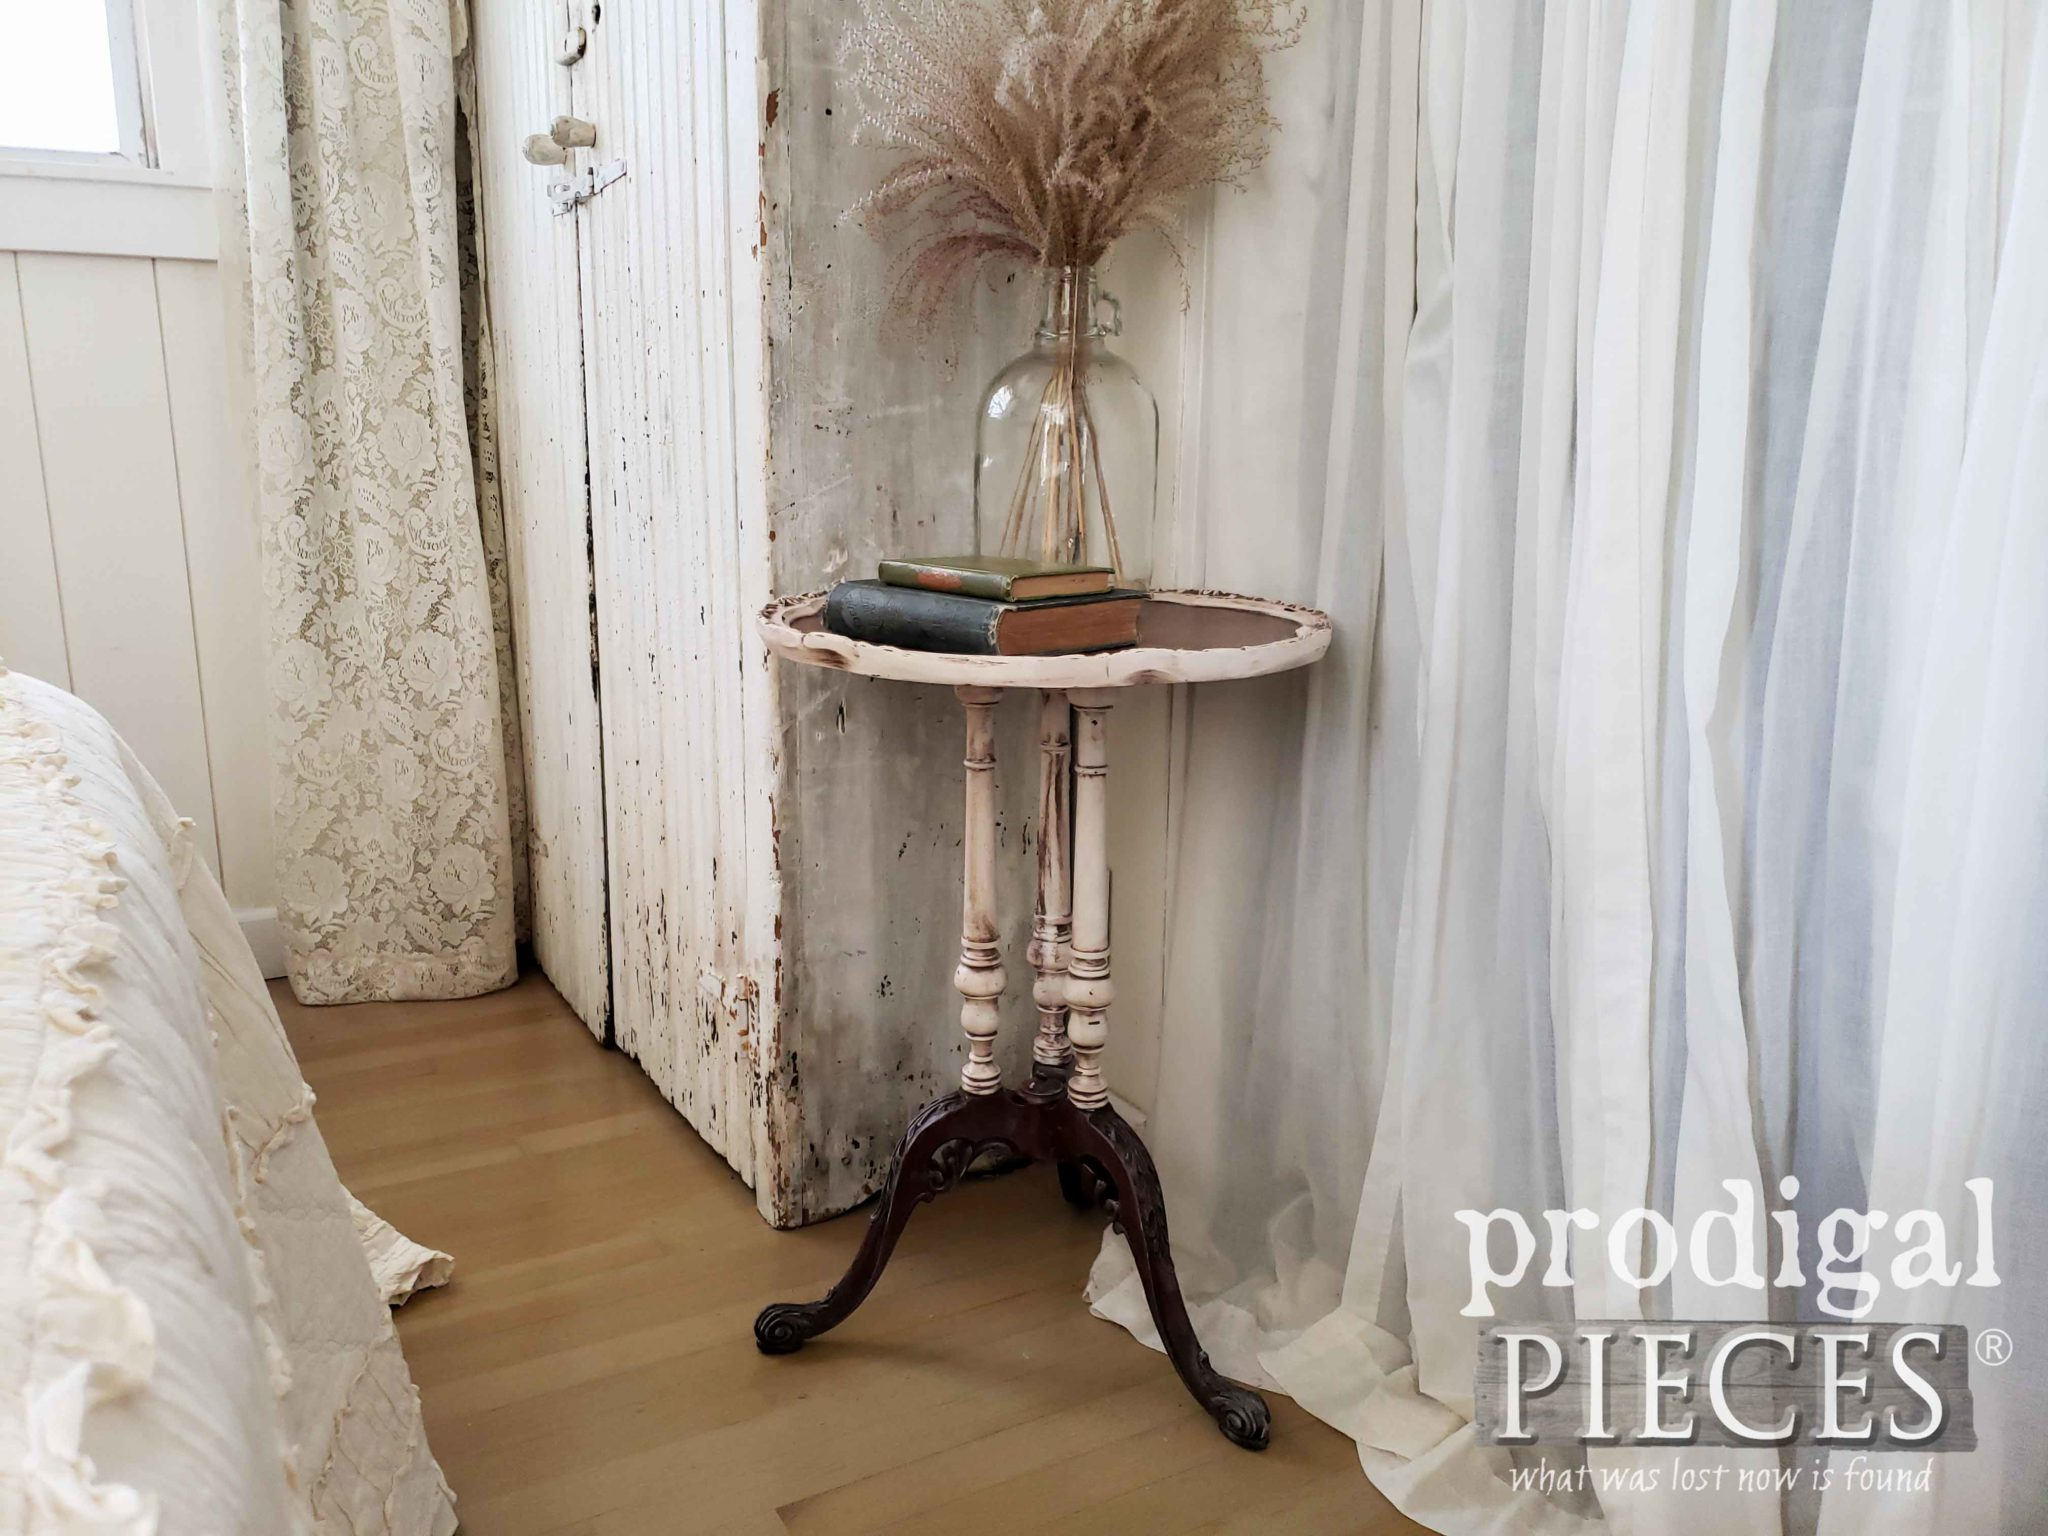 Gorgeous Antique Pie Crust Table Rescued from the Curb & Restored by Larissa of Prodigal Pieces | prodigalpieces.com #prodigalpieces #diy #furniture #home #homedecor #farmhouse